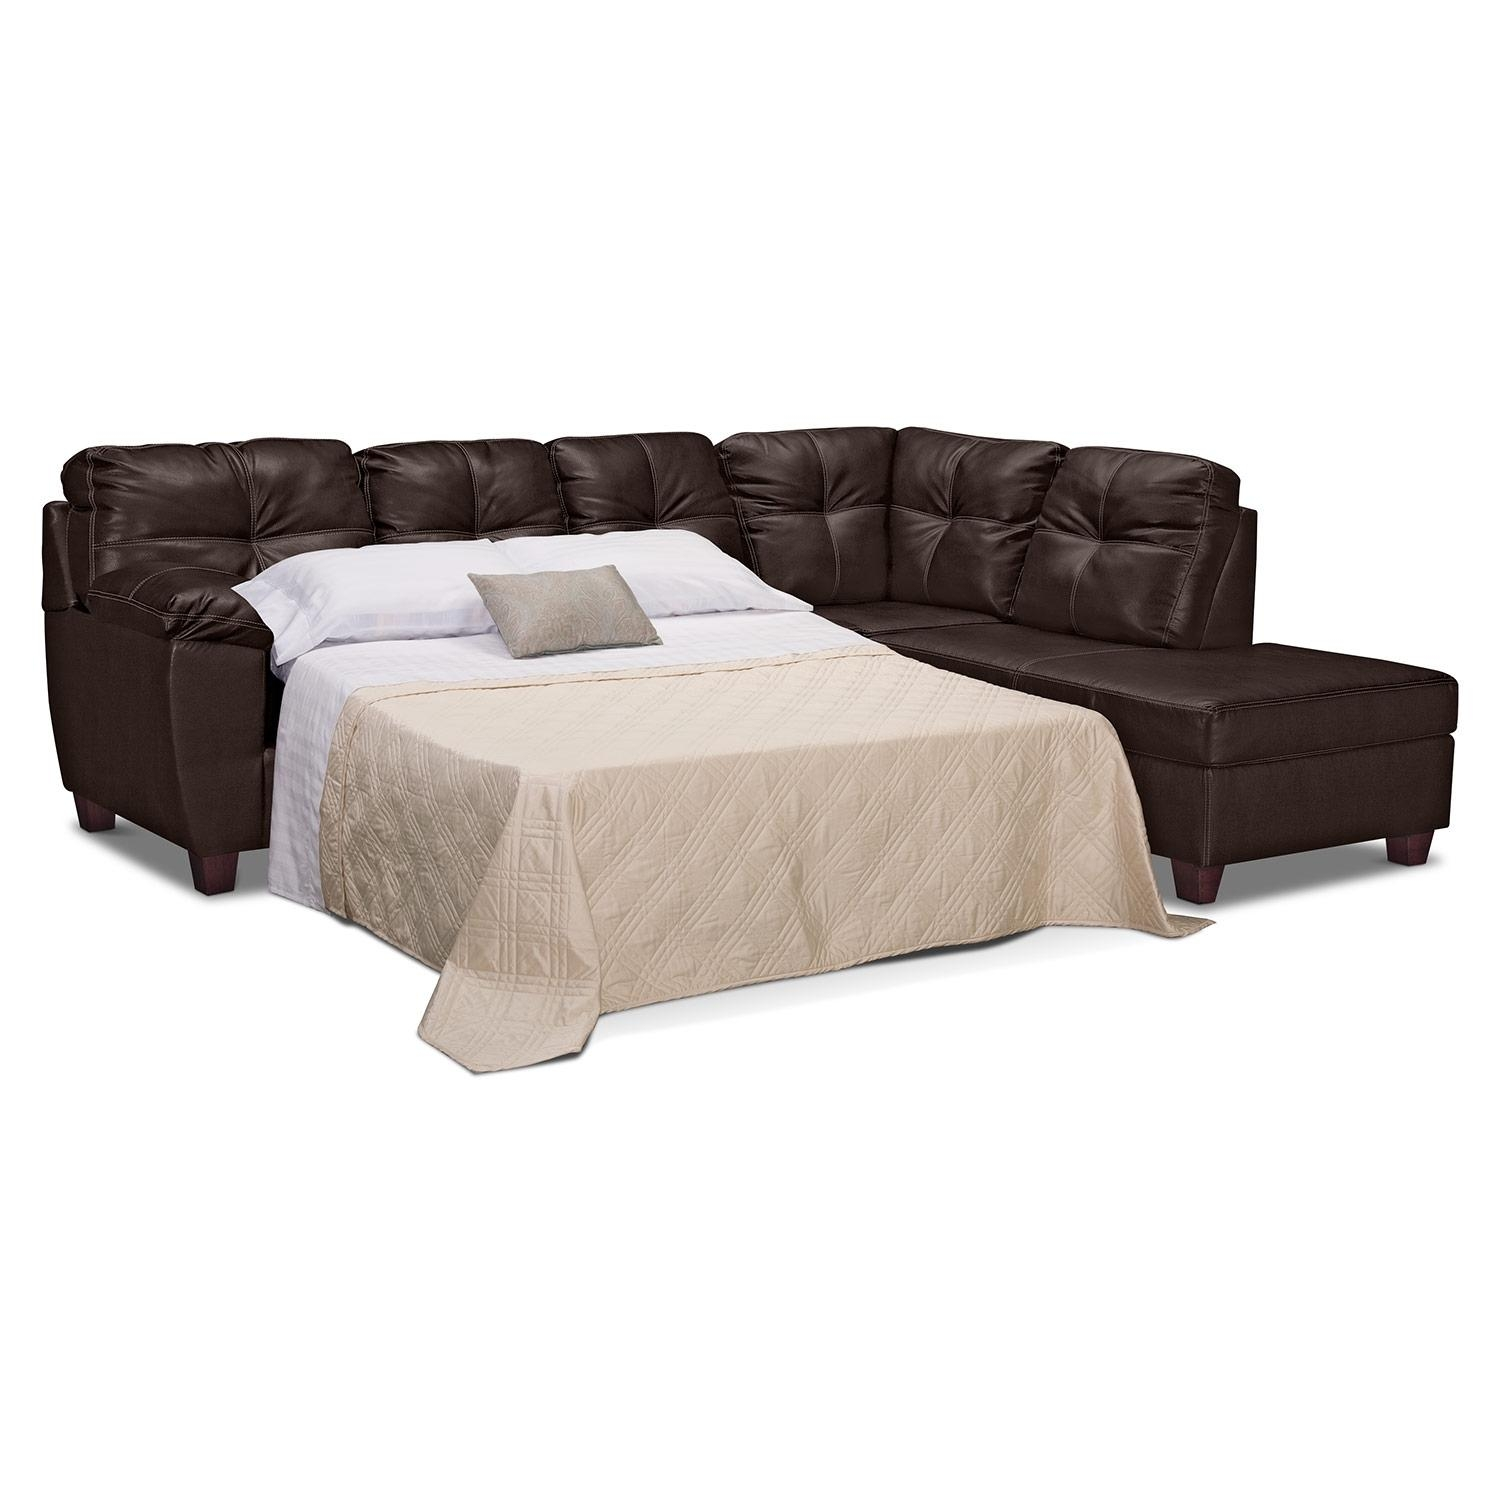 Furniture: Cozy Sleeper Sofa Ikea For Best Sleeper Sofa Ideas Intended For Ikea Sleeper Sofa Sectional (Image 7 of 20)